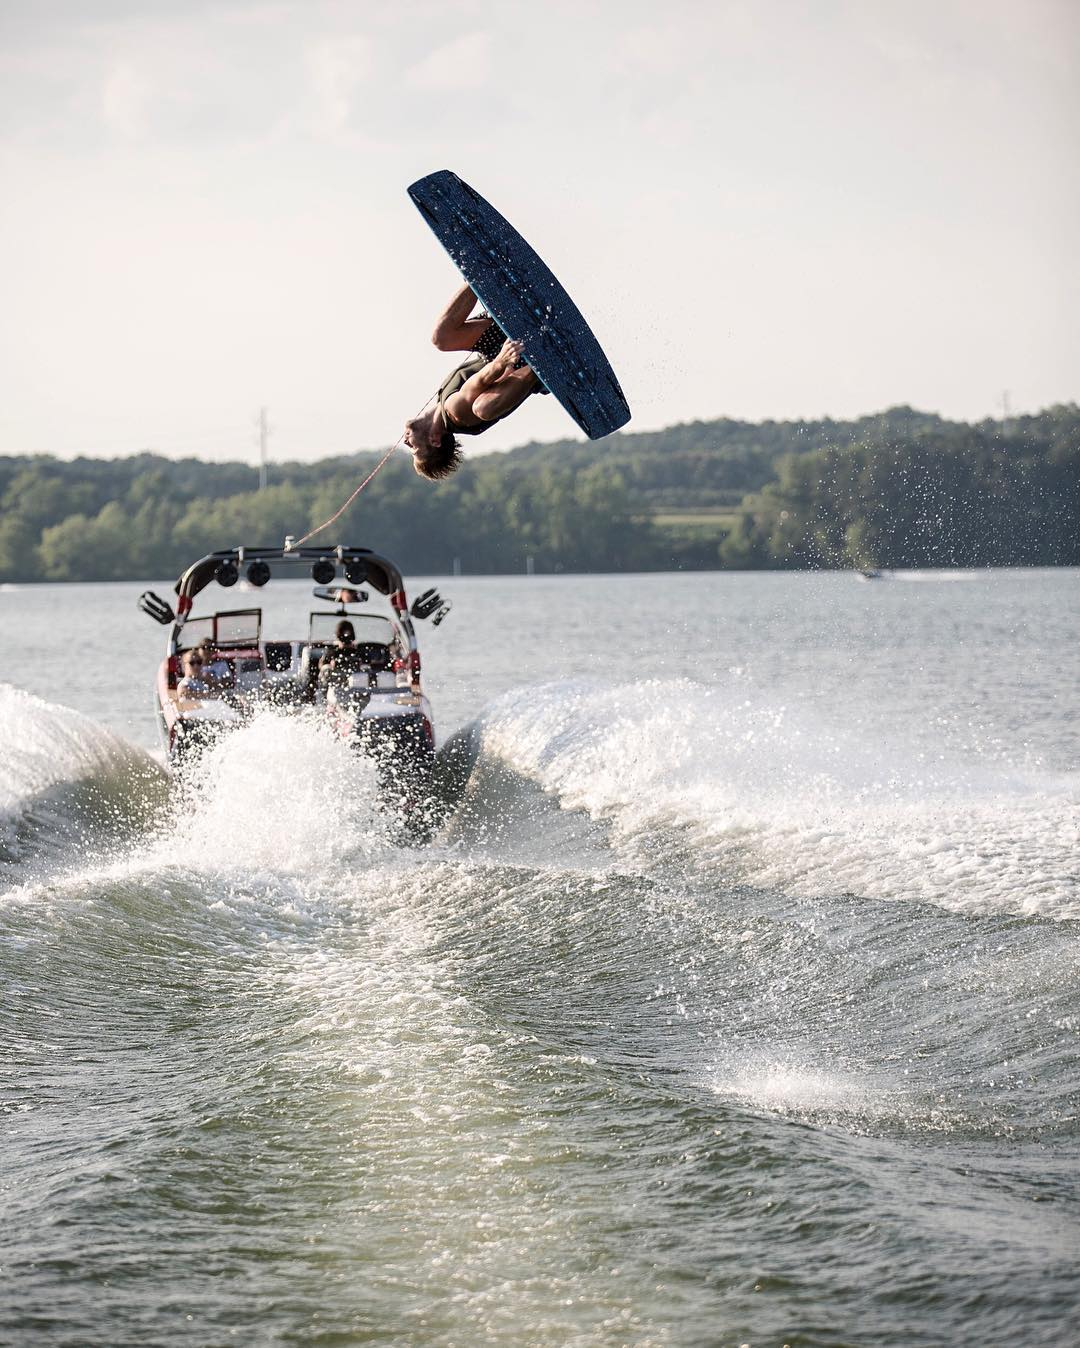 Take a boat set with our boiii @jleeboi behind the @buywake G21.